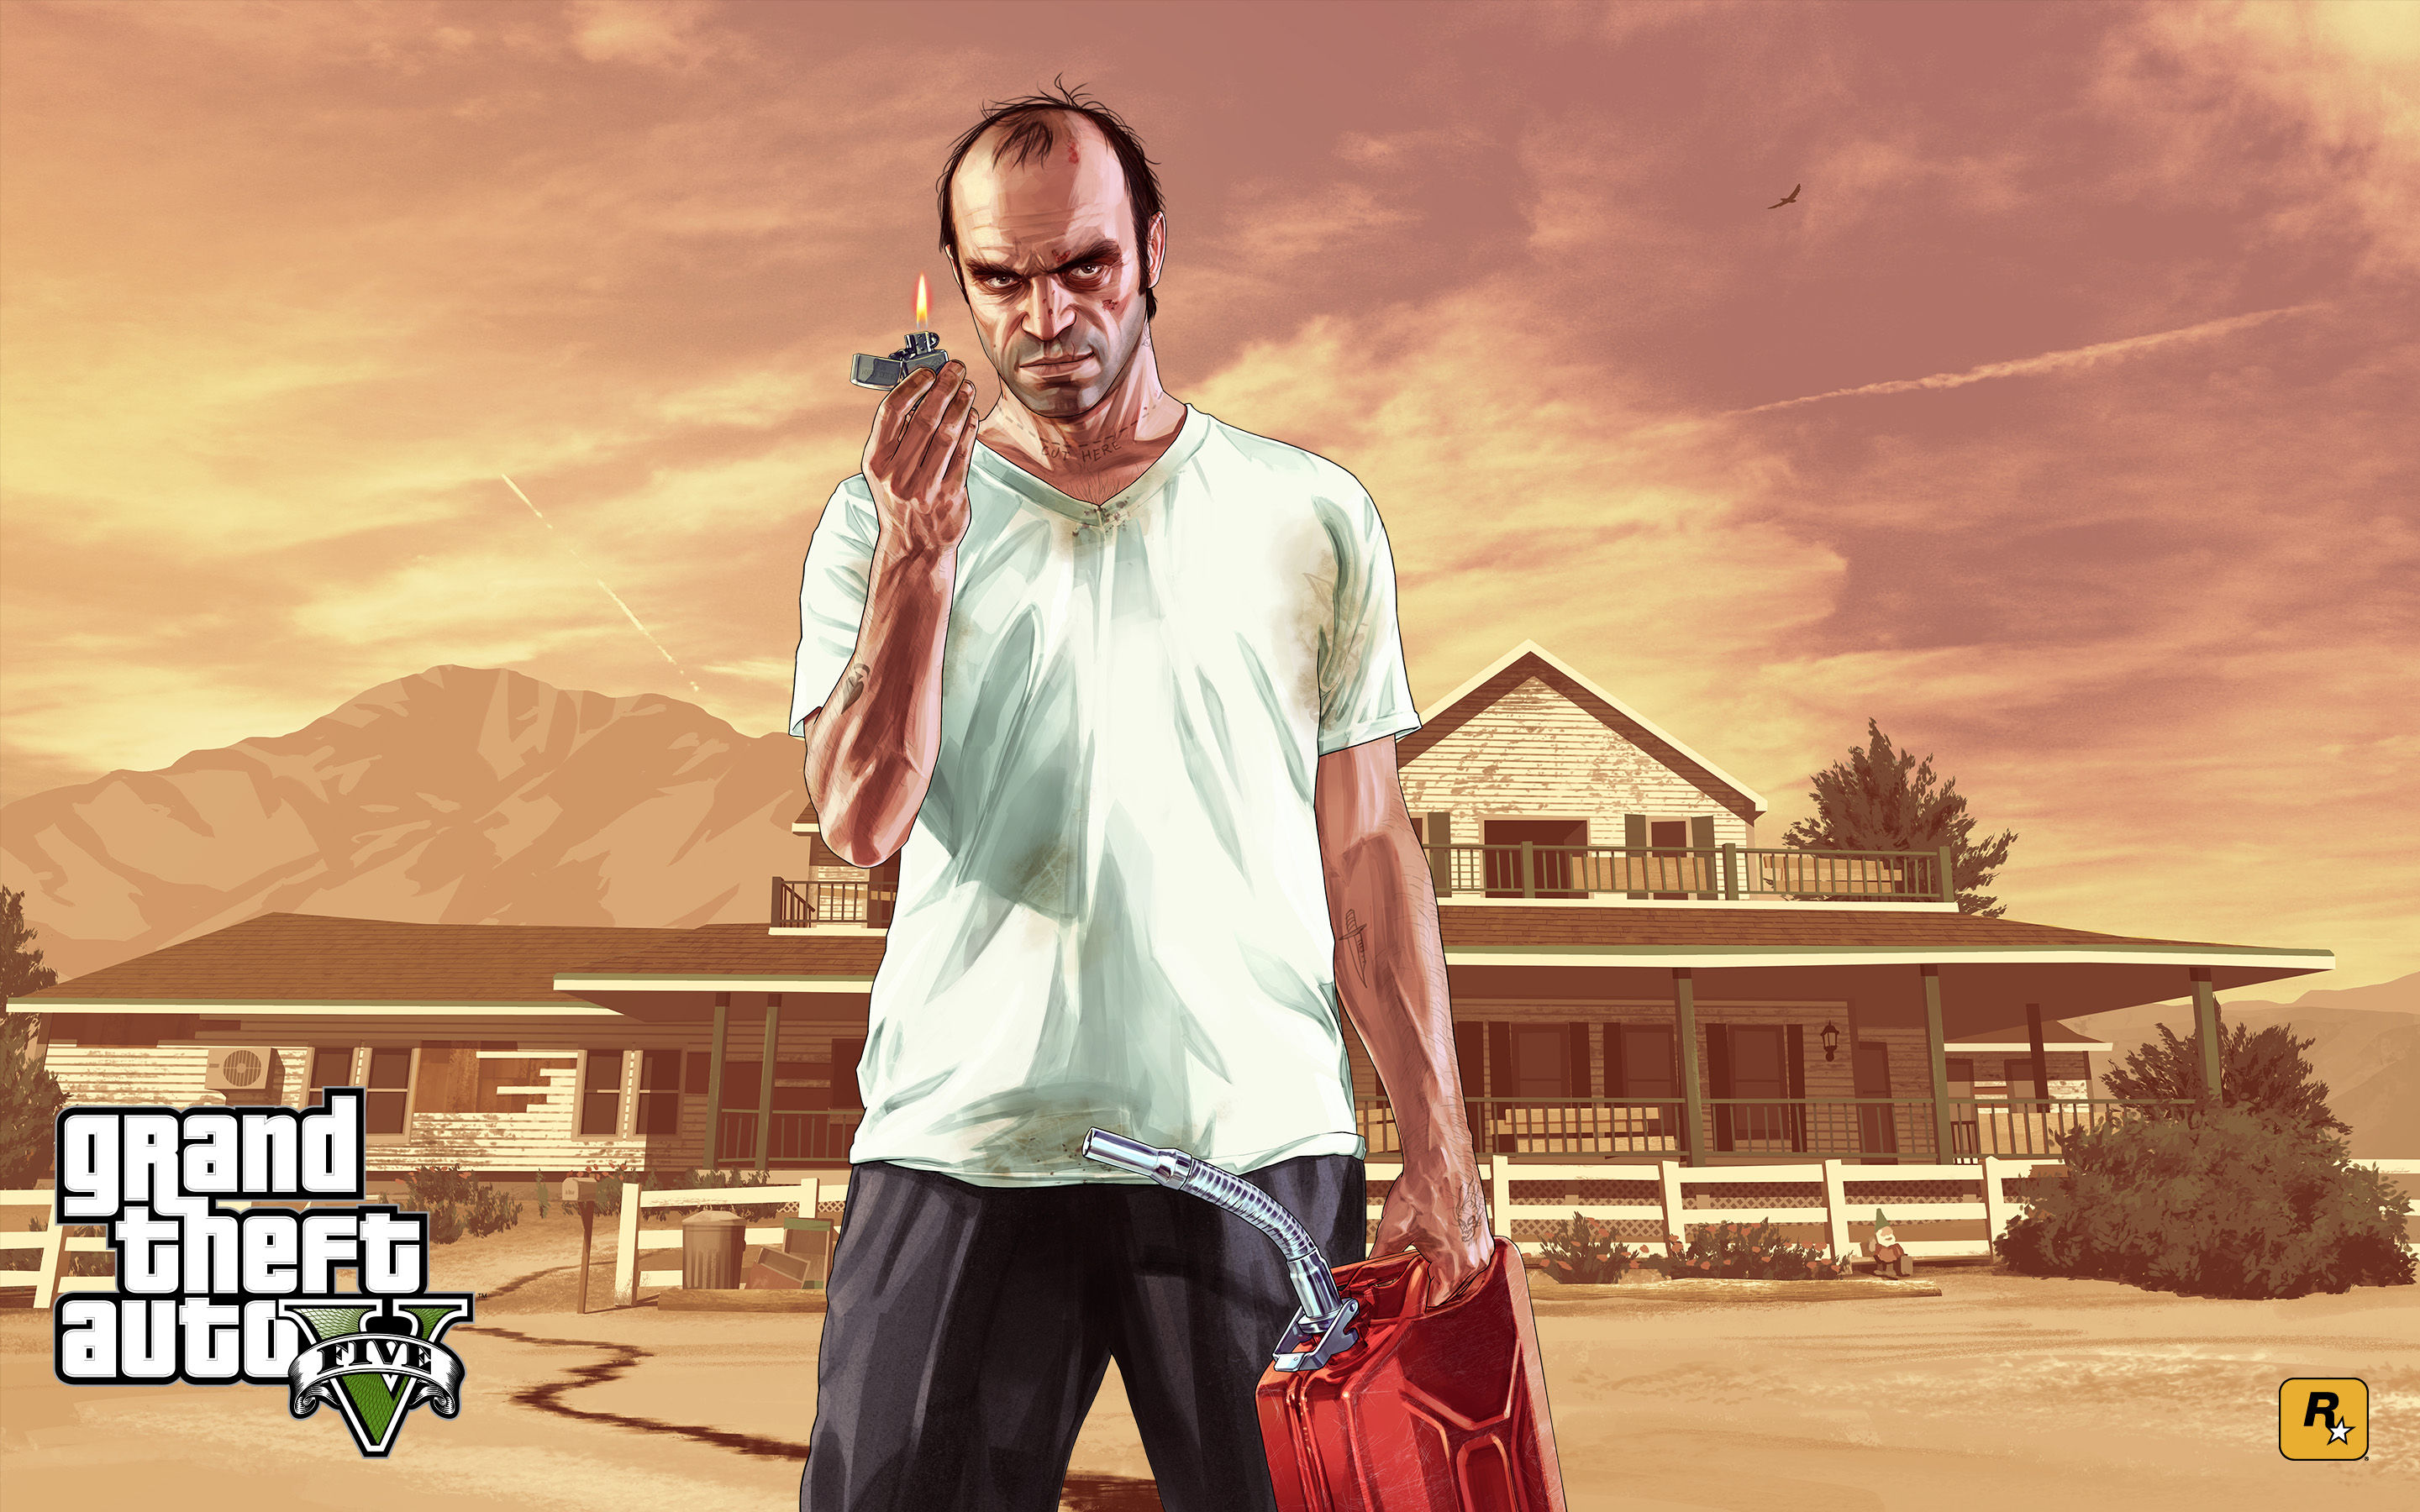 widescreen-gaming-gta-5-1640-wallpaper-trevor-firestarter-grand